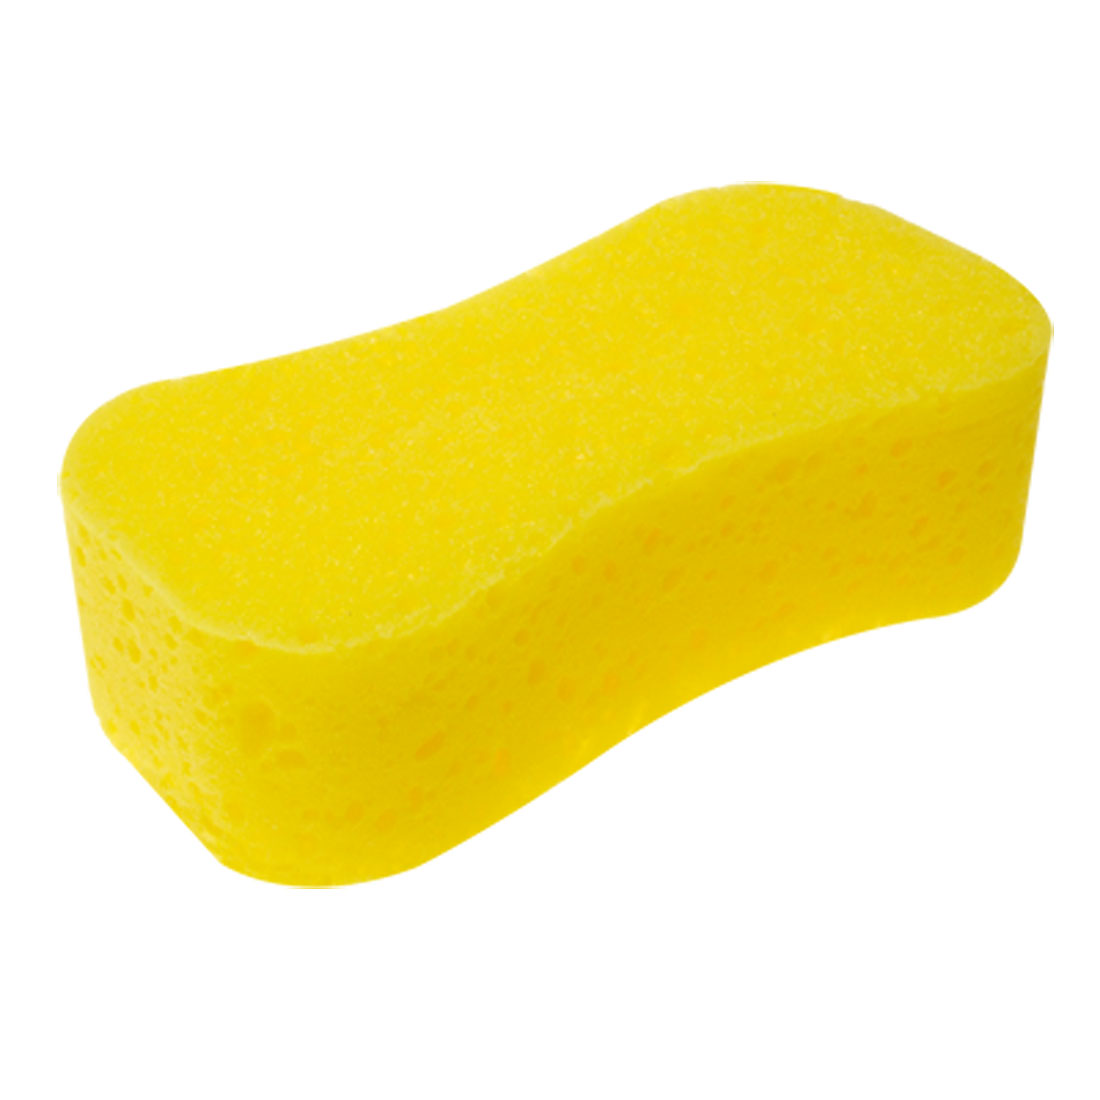 Yellow Cleaning Wash Sponge for Home Car Auto